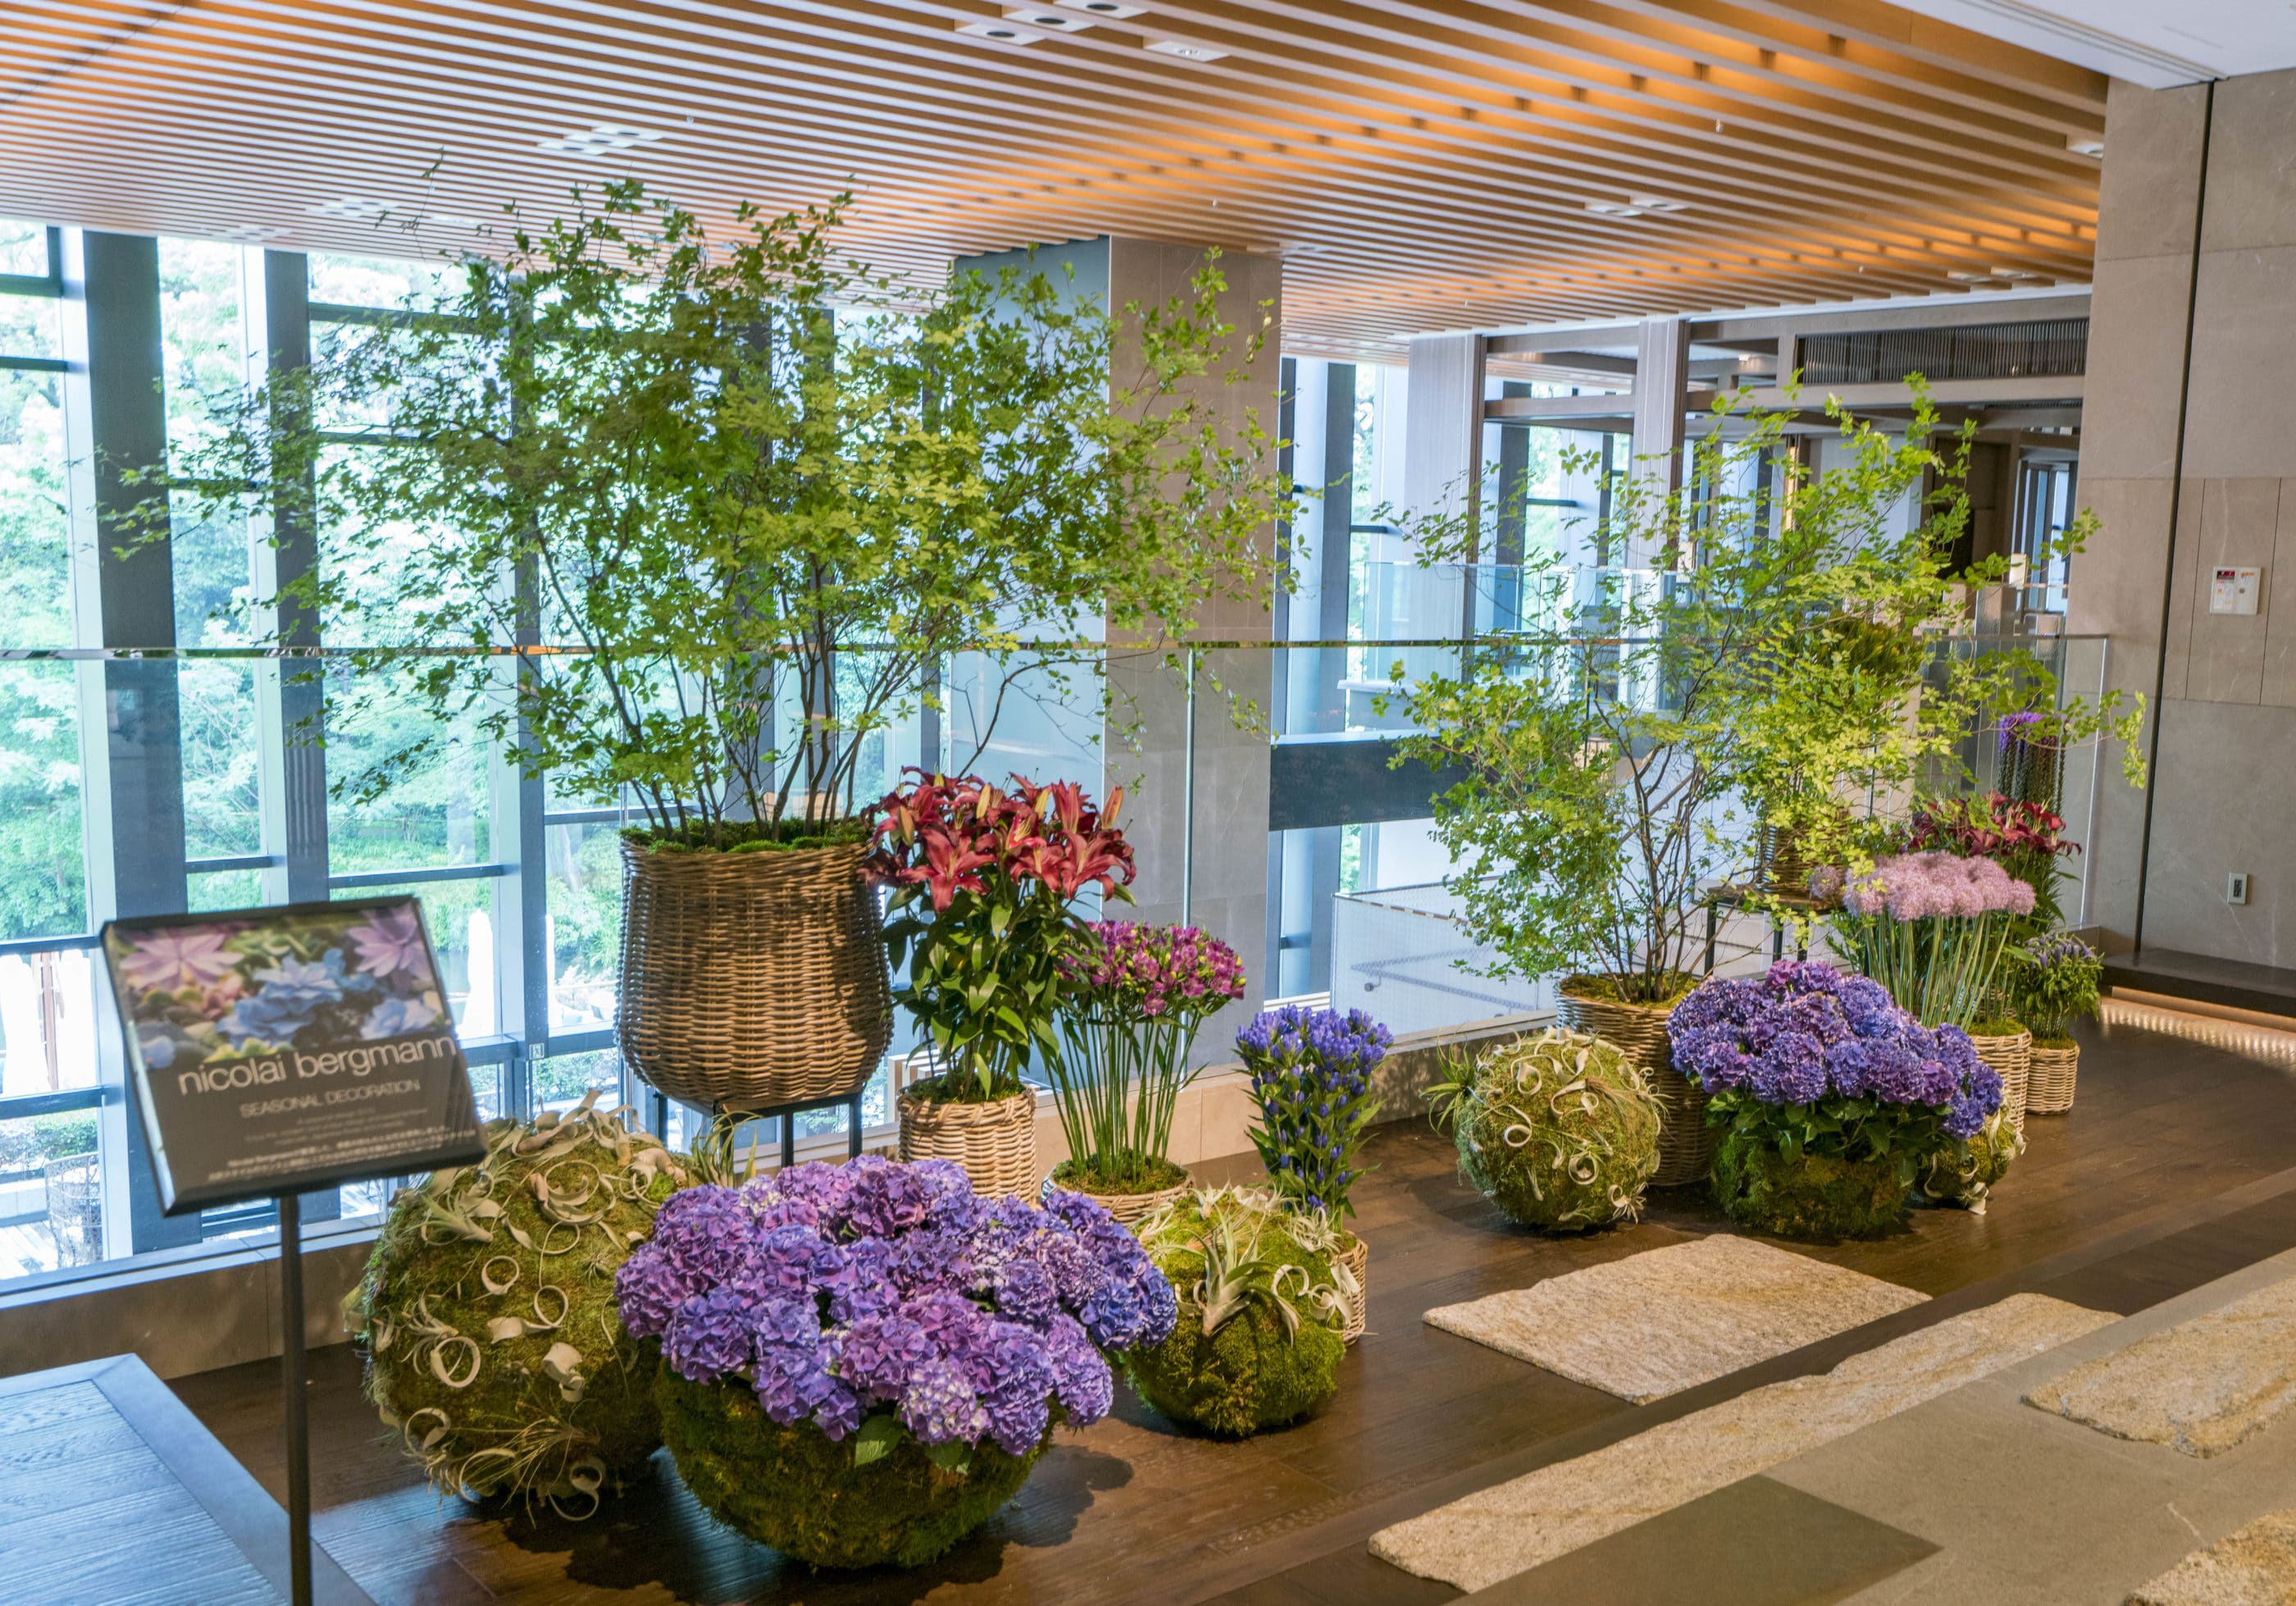 Moss orbs and spheres with flowers sit in front of baskets full of live arrangements in the lobby at Four Seasons Kyoto